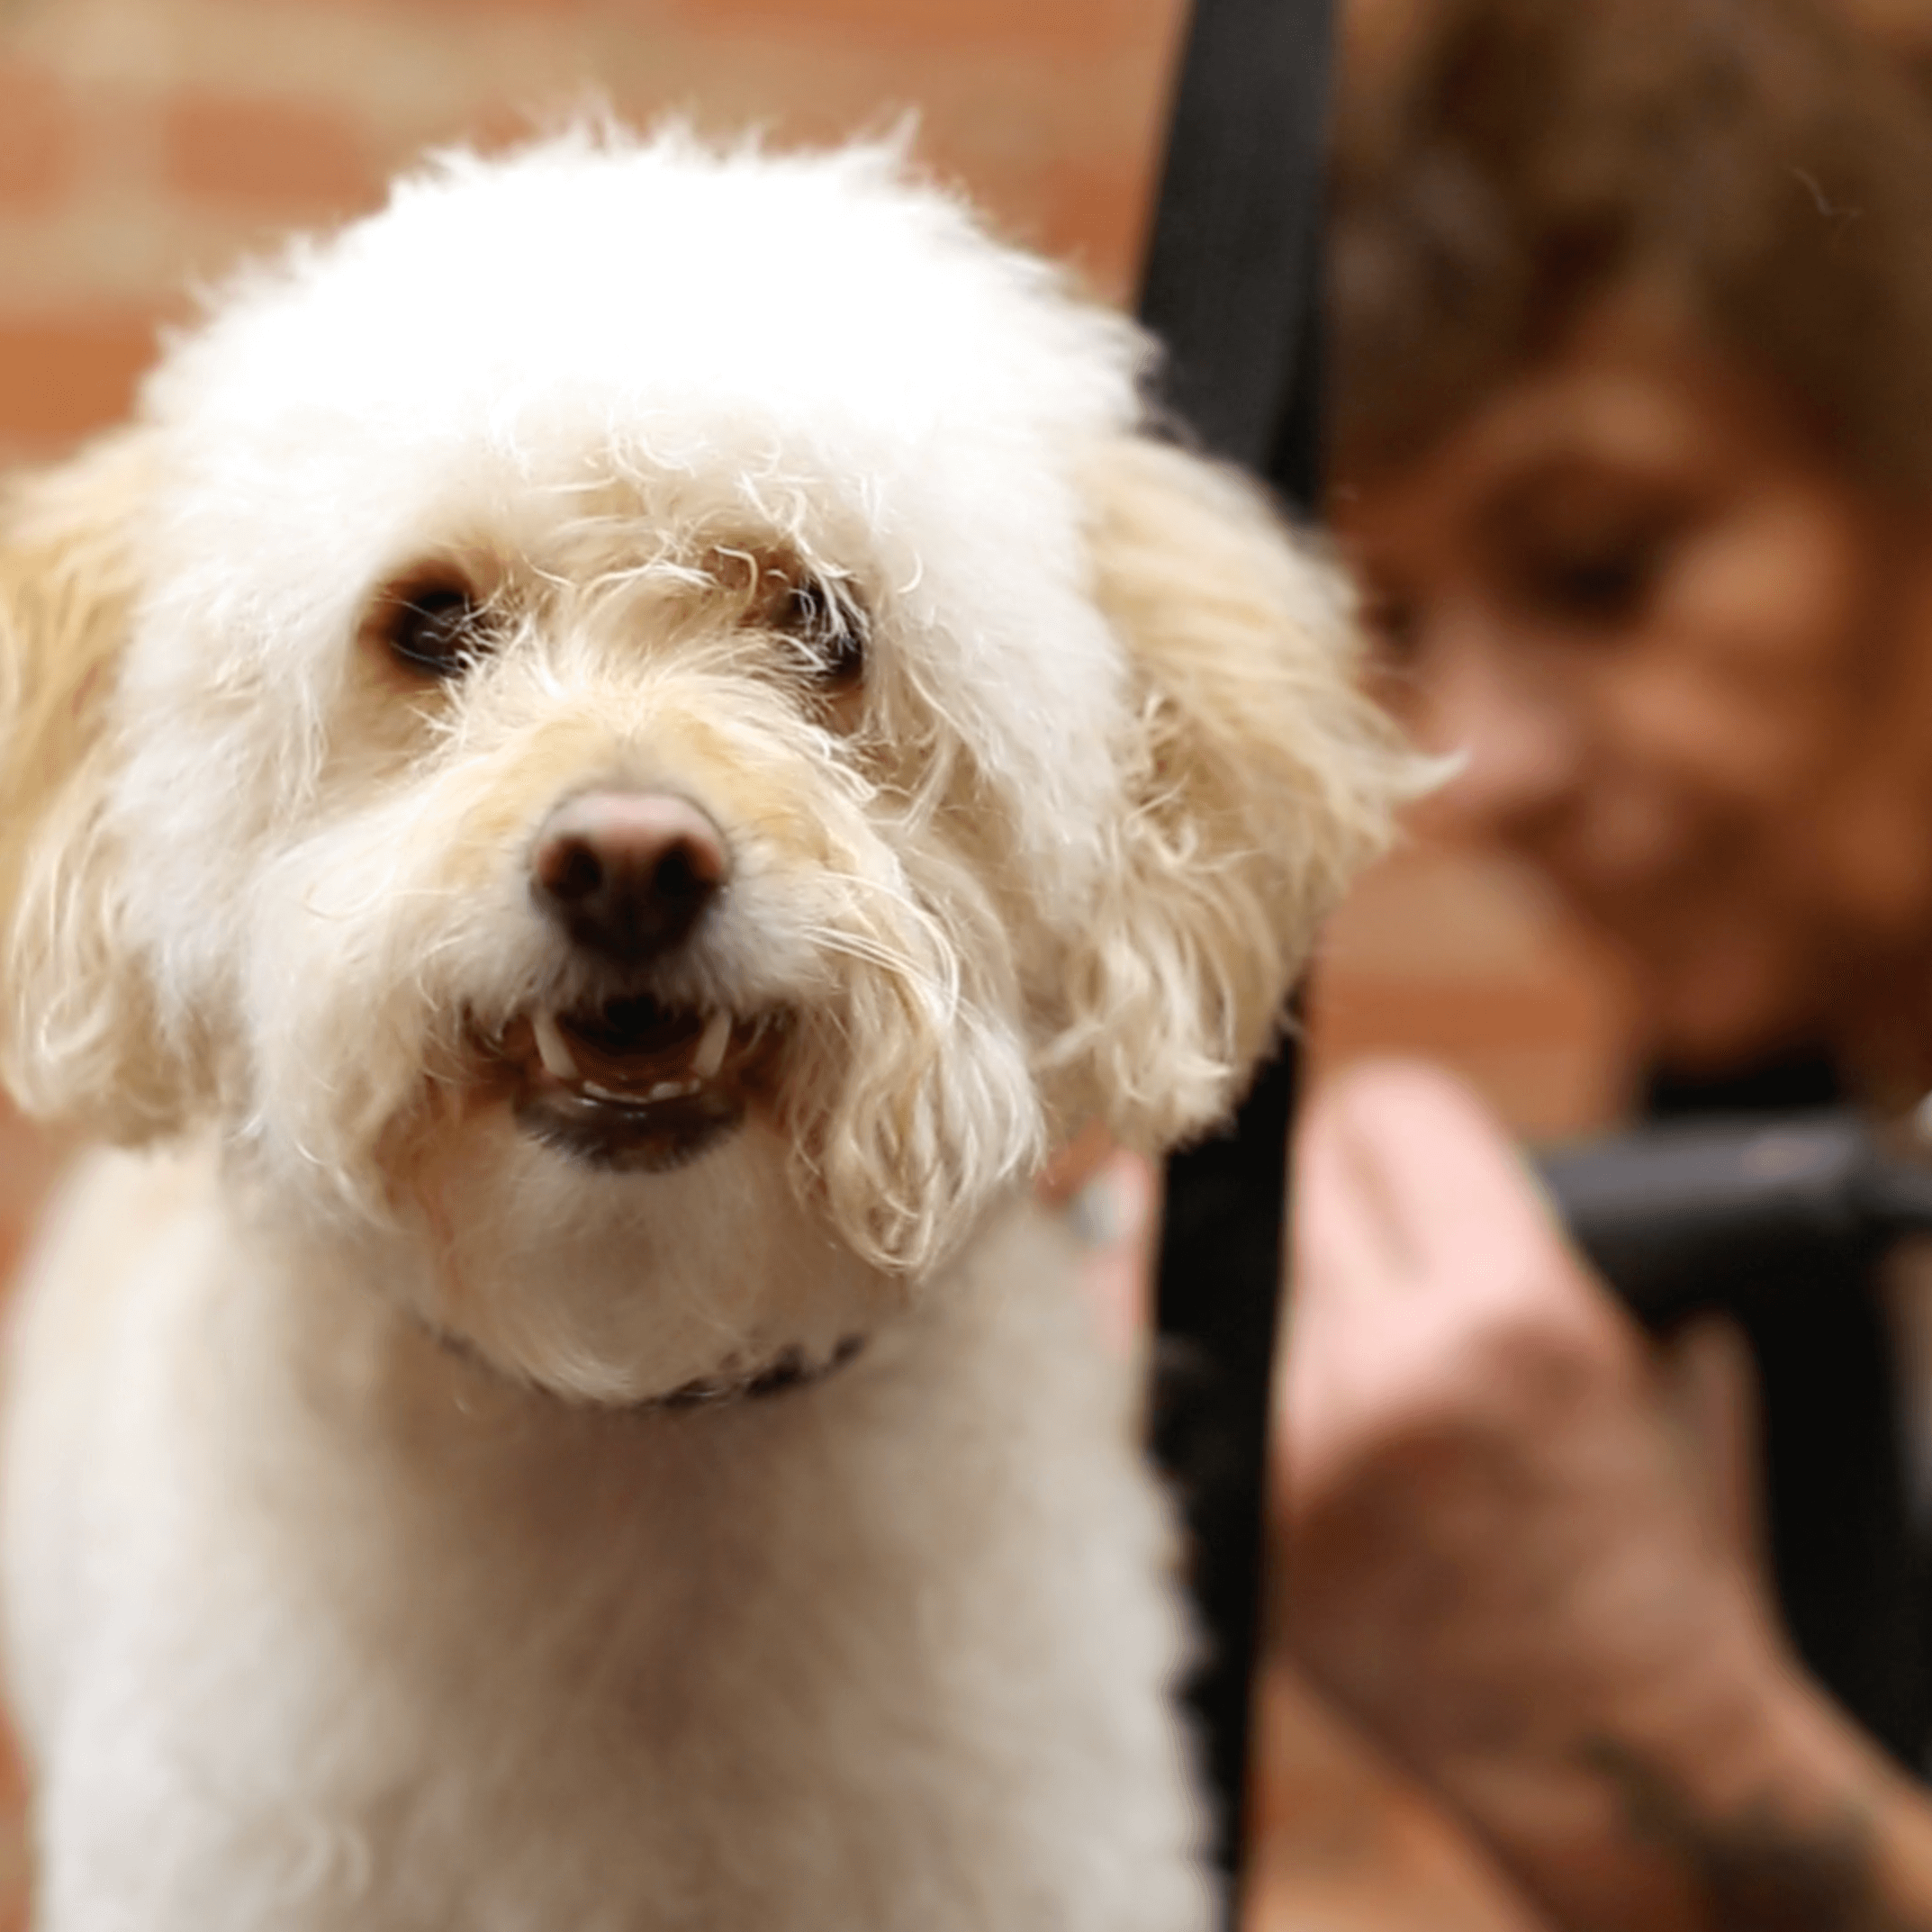 Dog Grooming Tips: Bathe Dog As Little As Possible